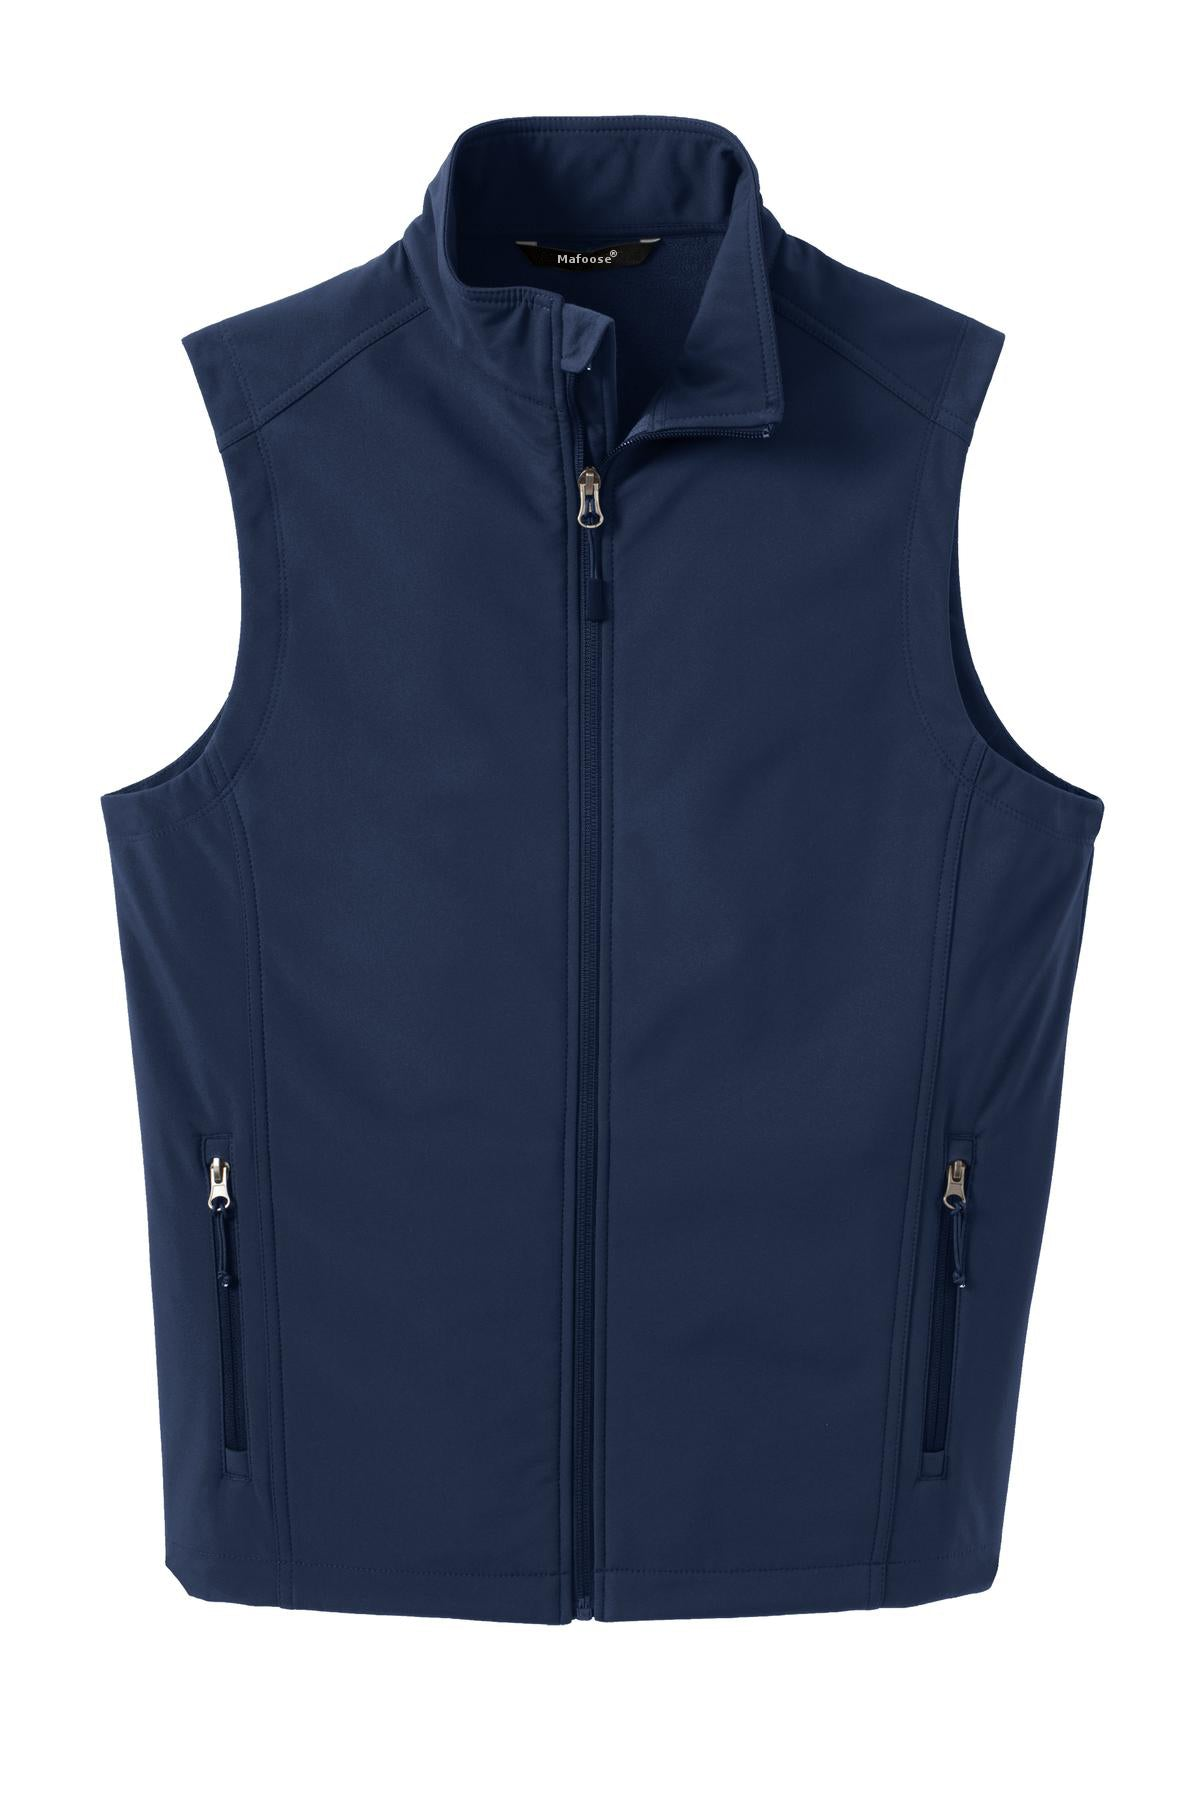 Mafoose Men's Core Soft Shell Vest Dress Blue Navy